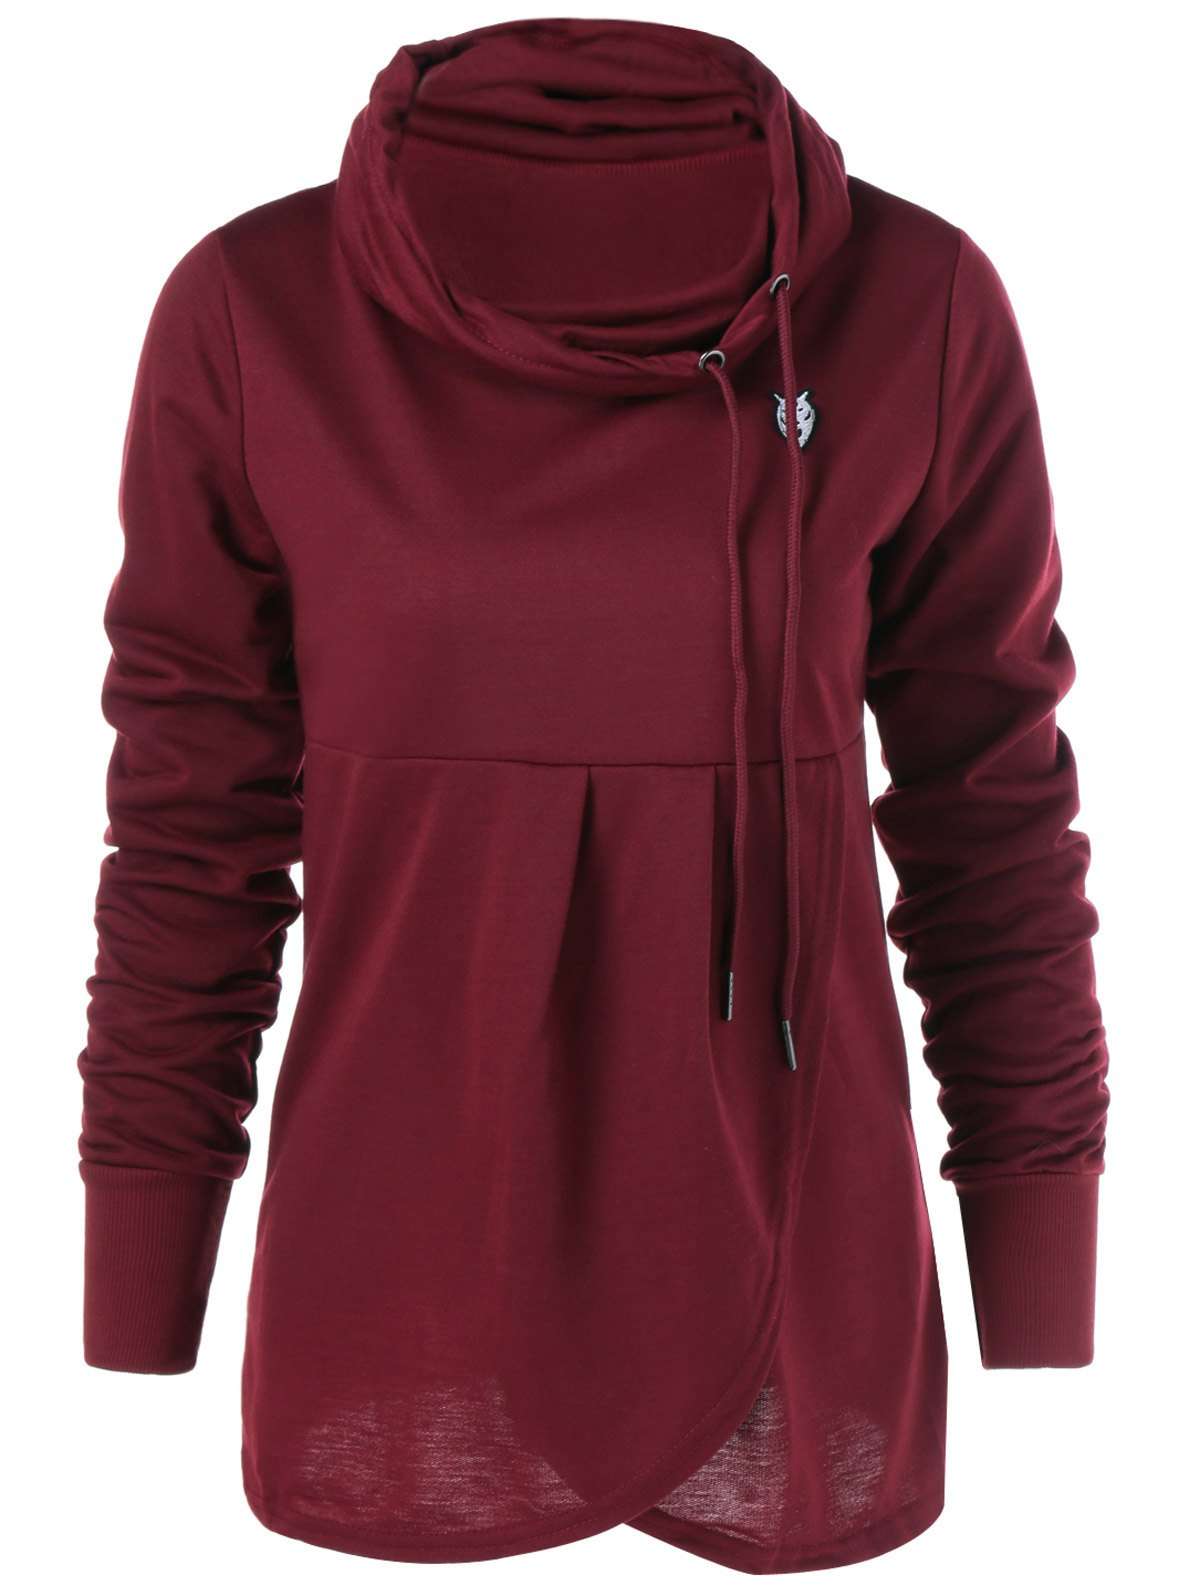 Cowl Collar Pullover Sweatshirt - WINE RED S